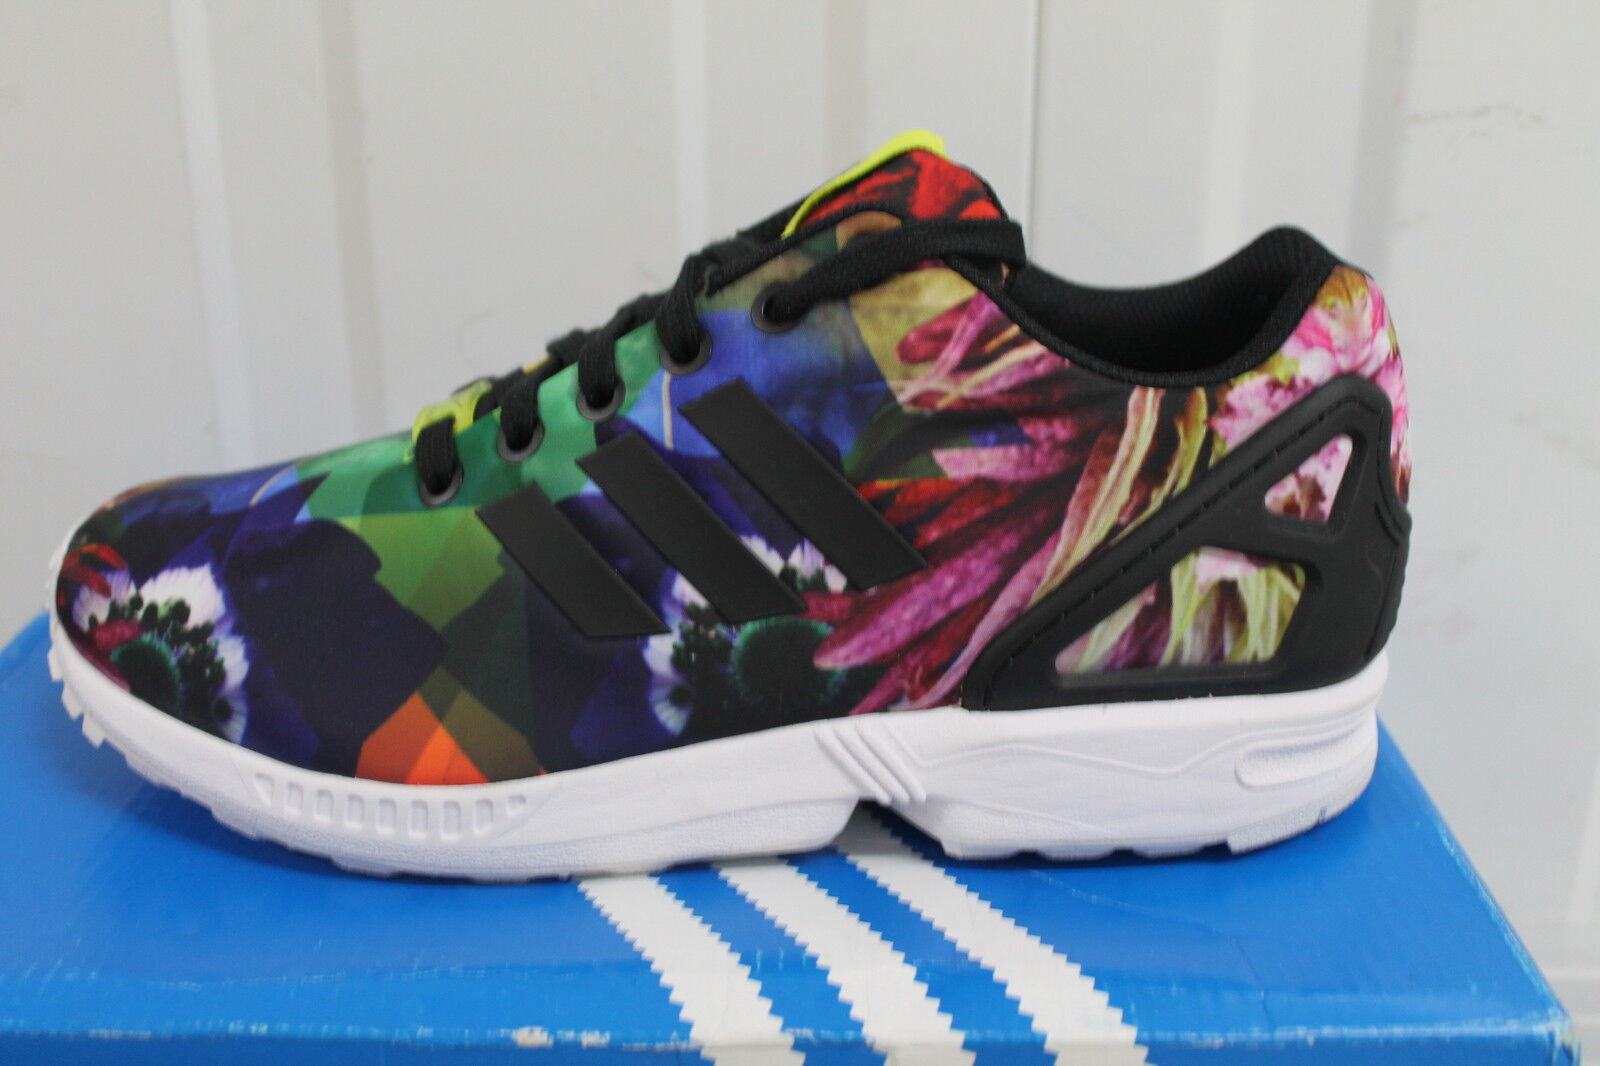 JUNIOR,S ZX ADIDAS ZX JUNIOR,S FLUX FLORAL LIMITED EDTIONS BNIB c86b55